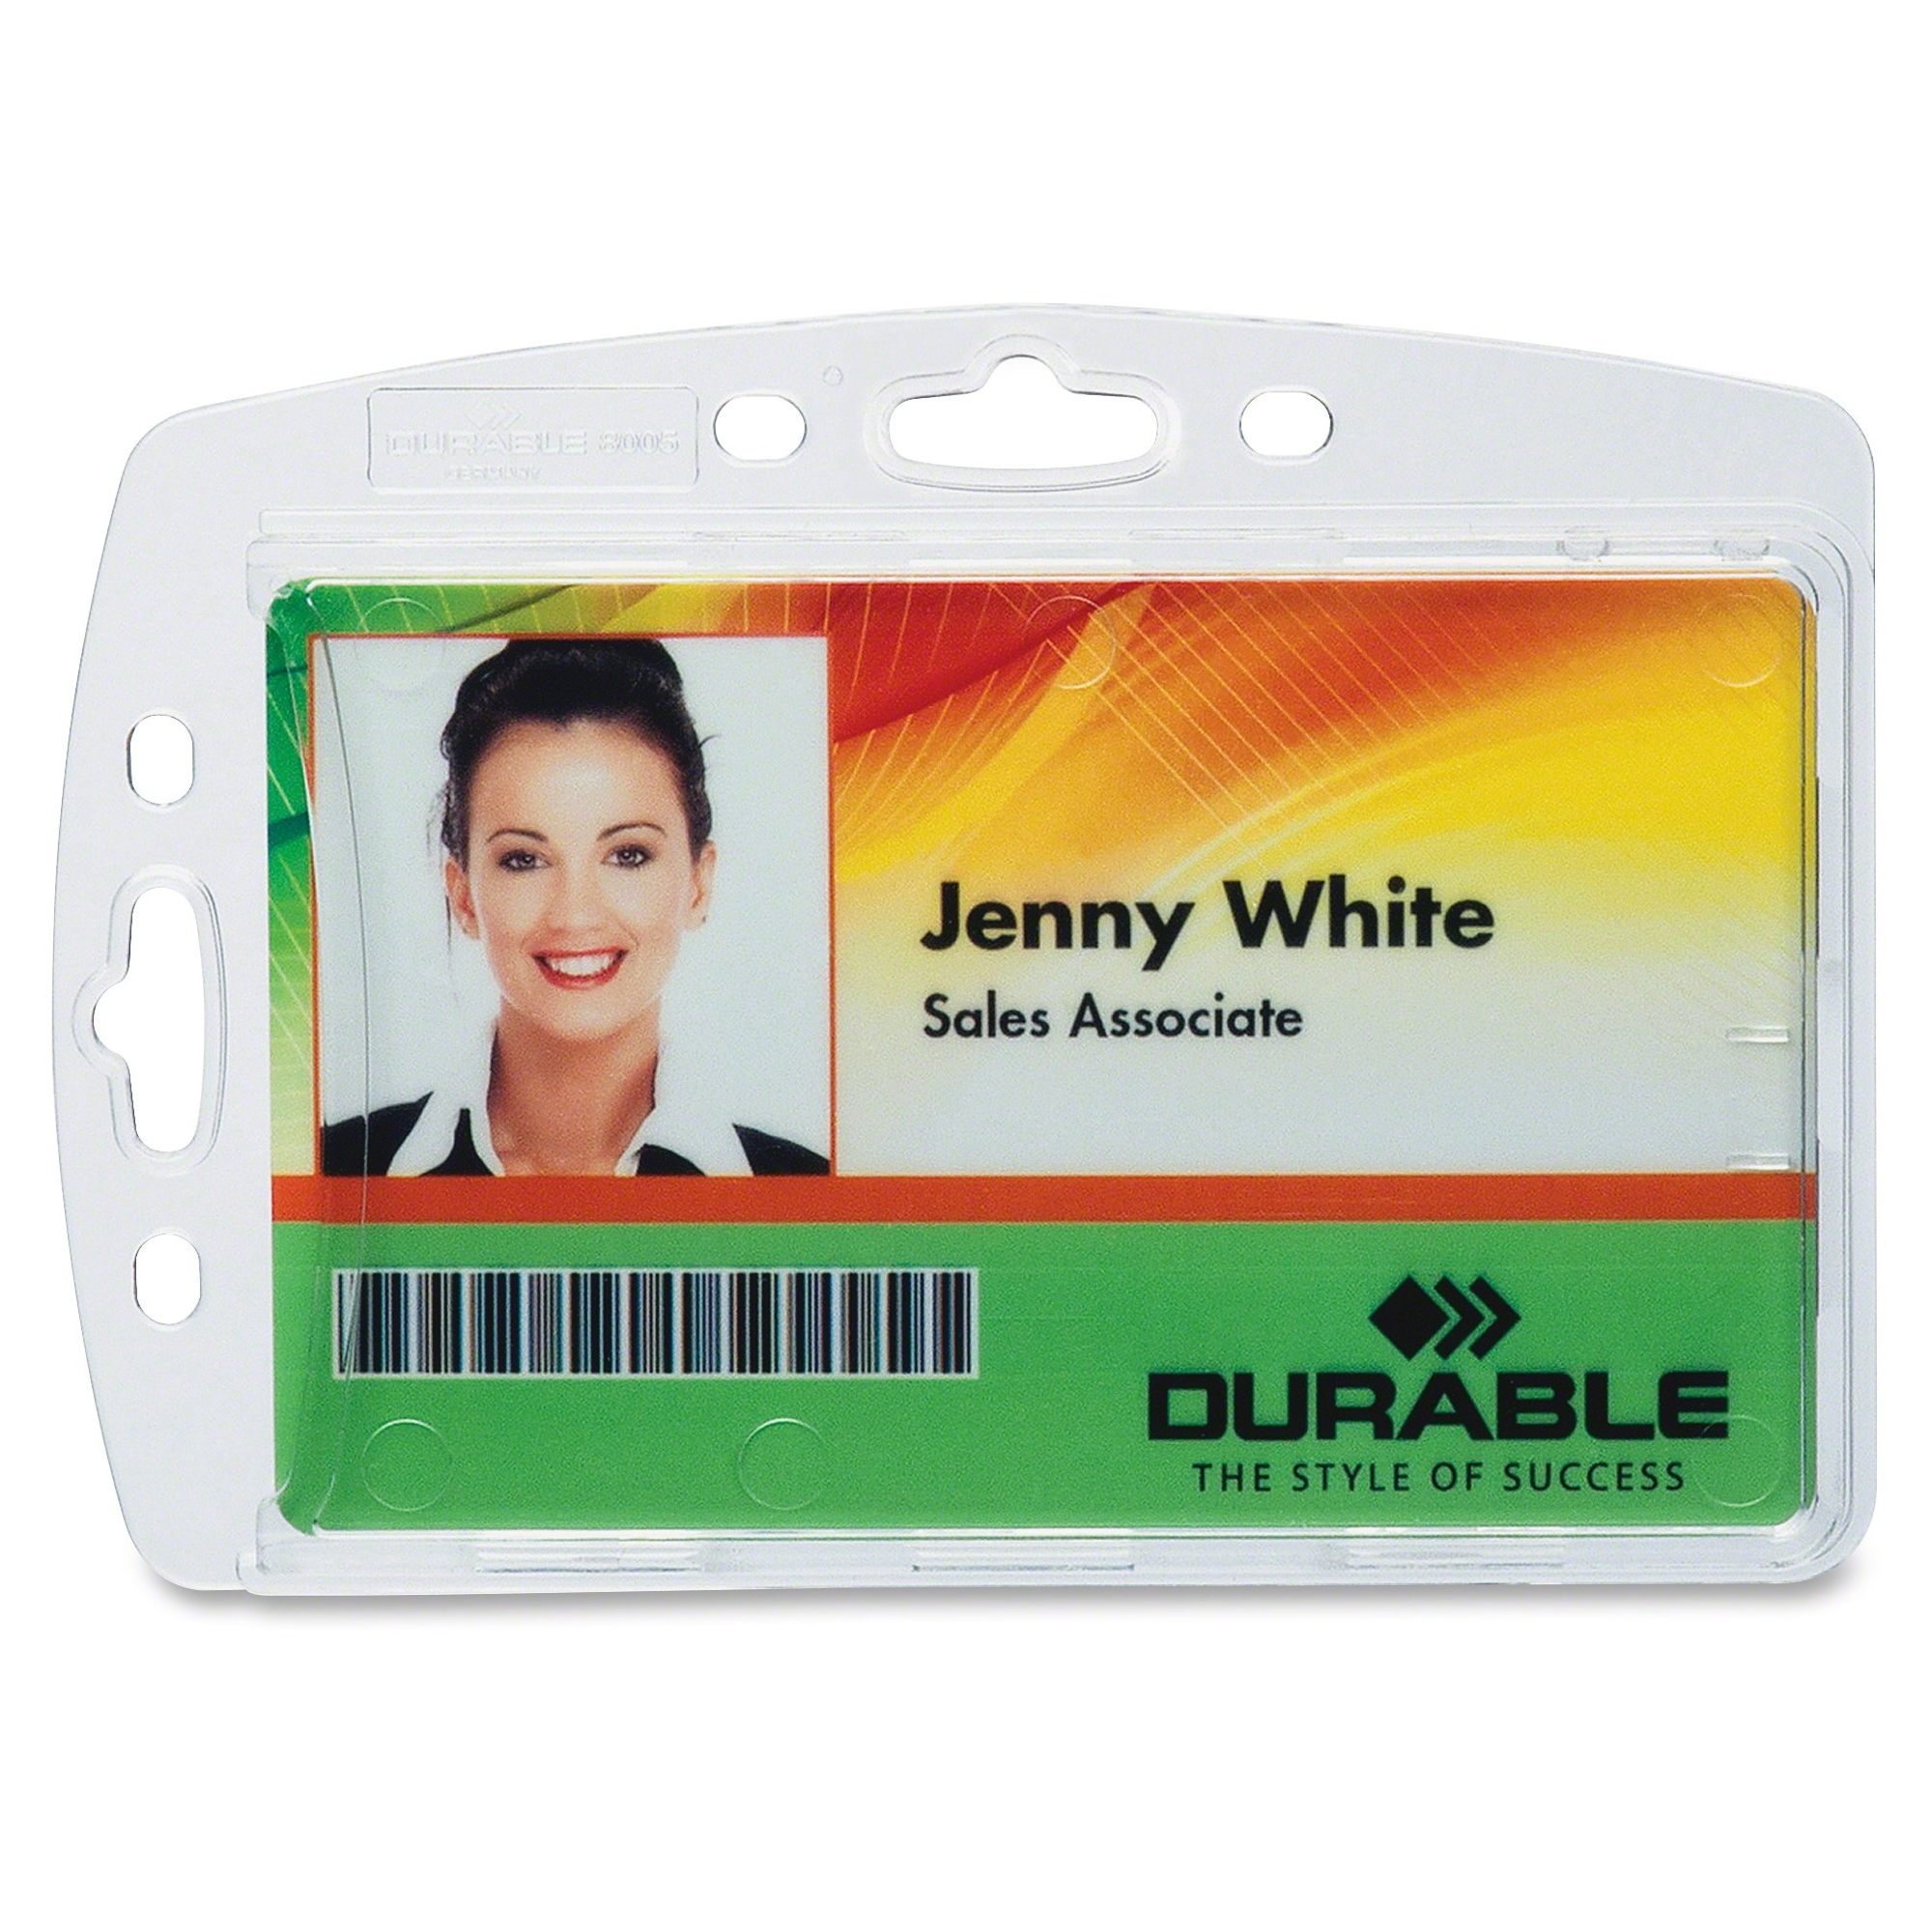 Durable 8005/8012/8268 Replacemt Id Card Holders - Horizontal, Vertical - Acrylic - 10 / Box - Clear (dbl-890519)